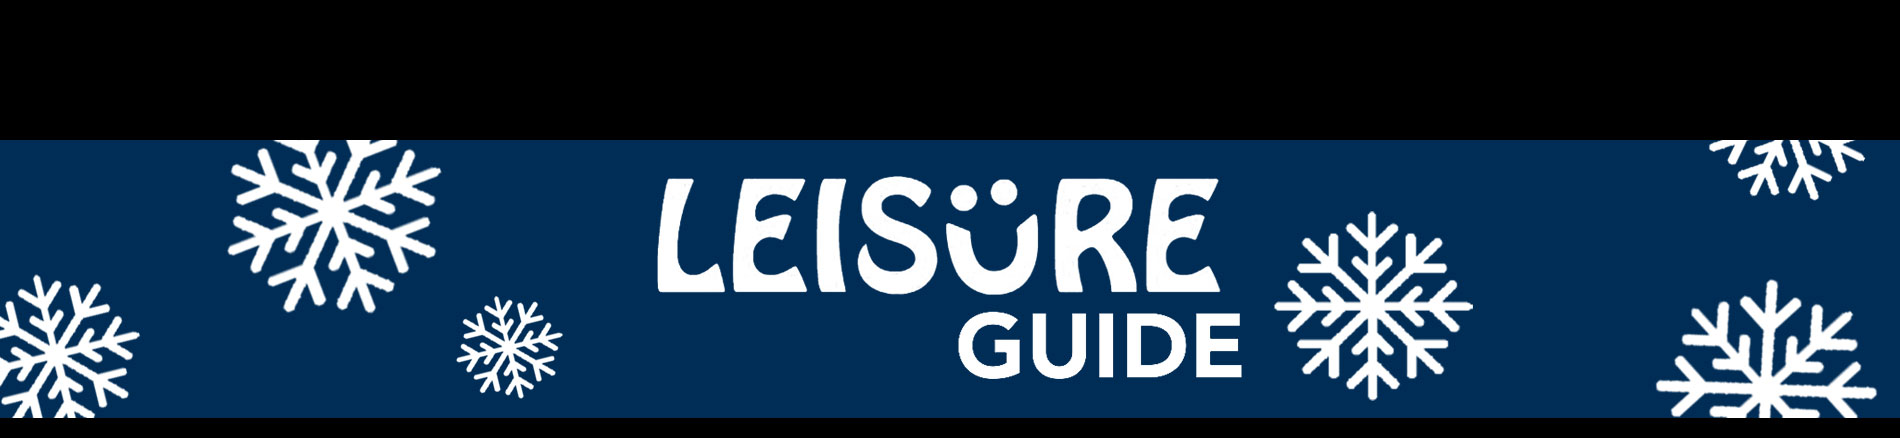 Leisure Guide